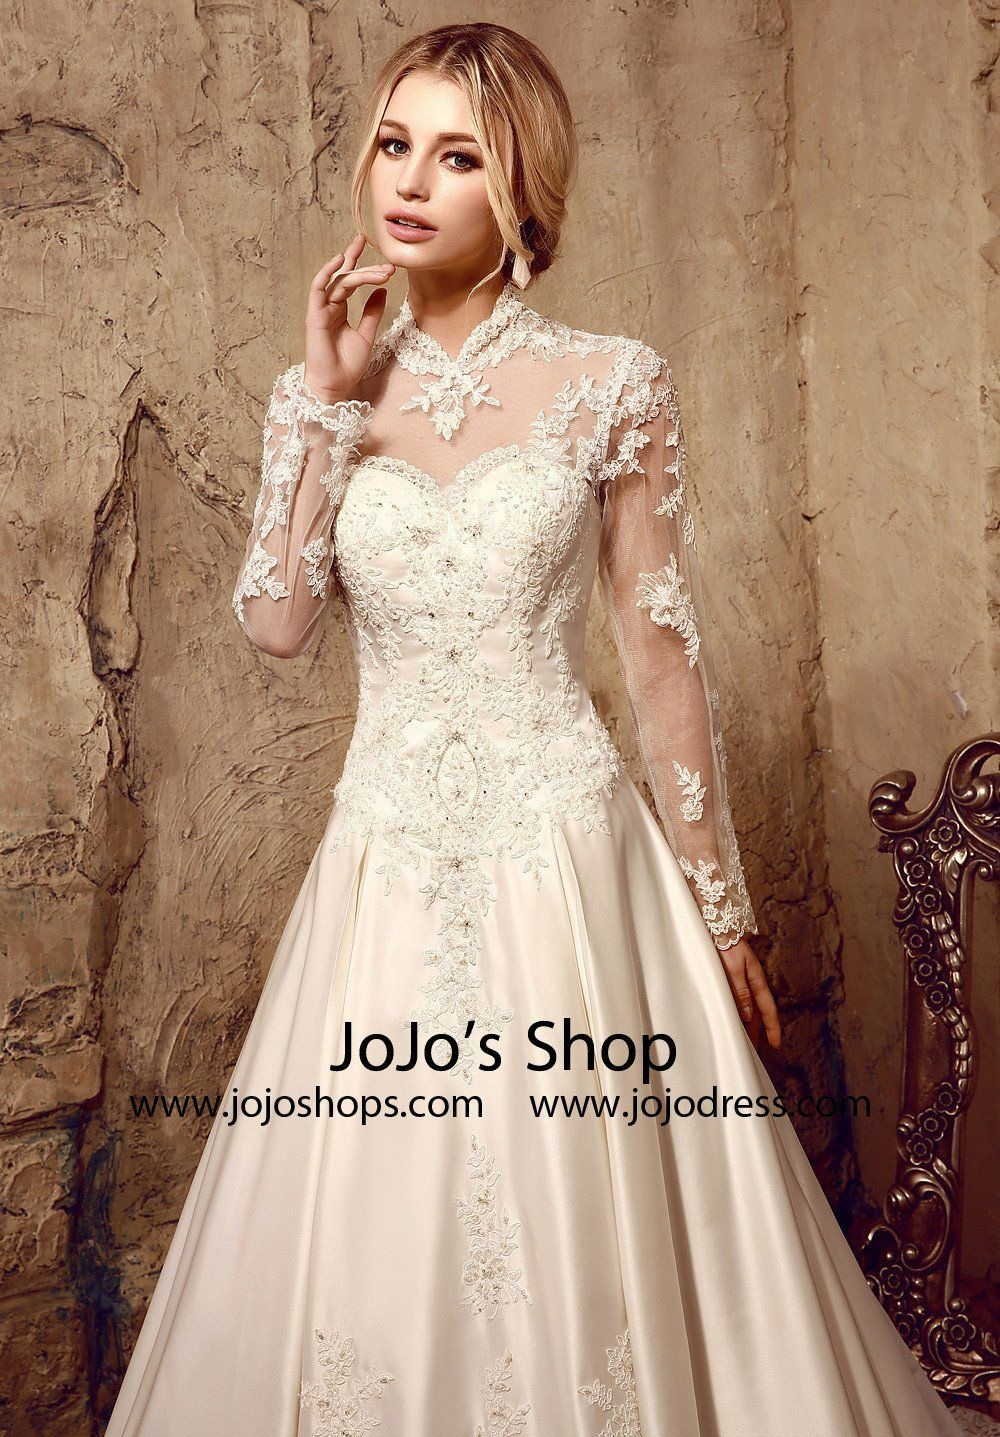 Ball gown wedding dress with sleeves  Long Sleeves Victorian Style Modest Lace Wedding Dress  Wedding as